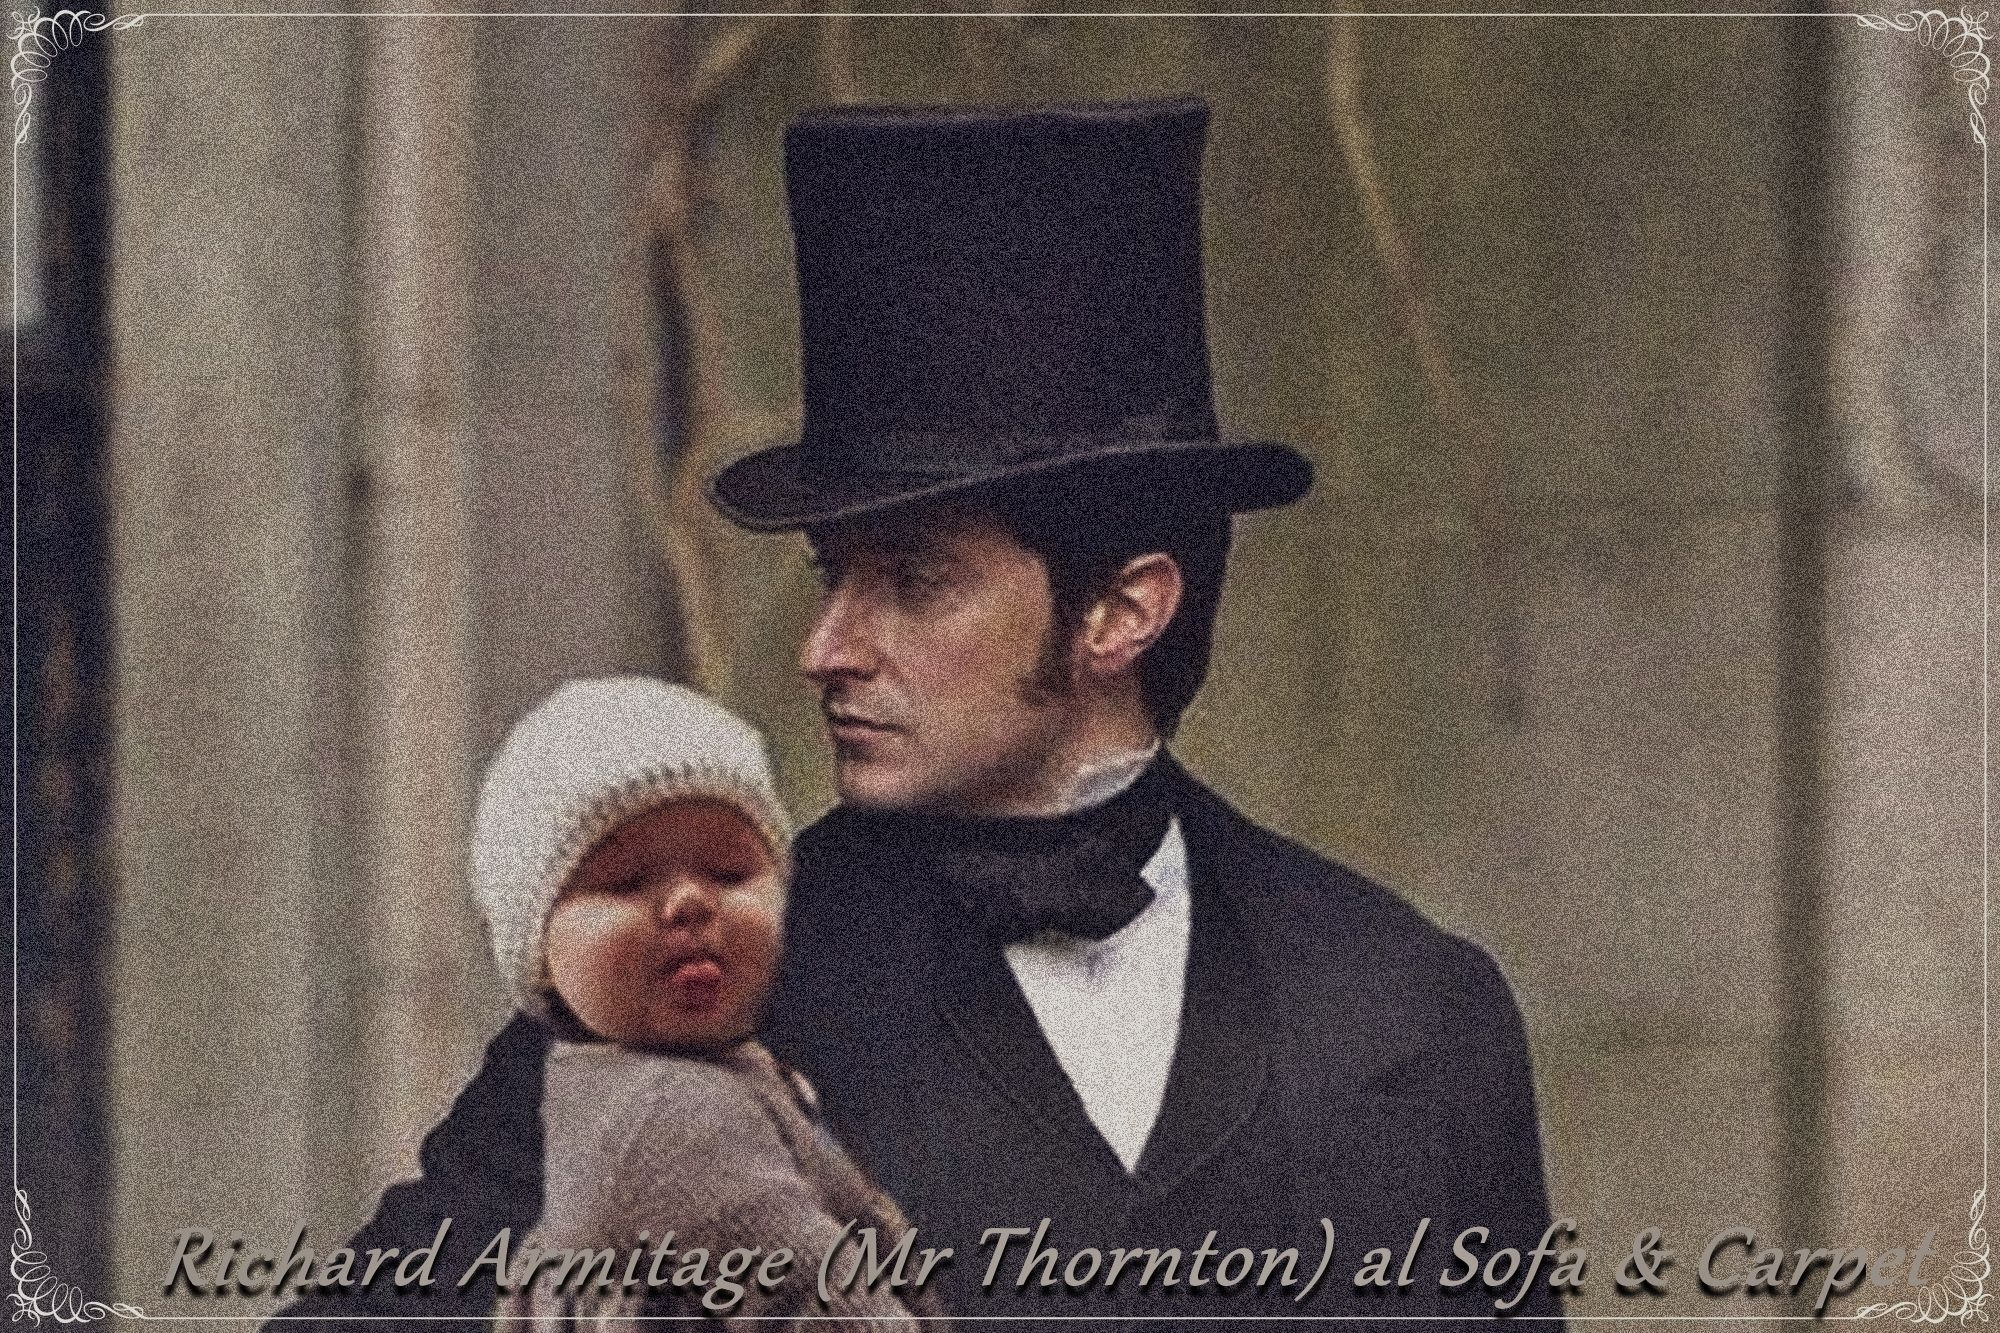 MR THORNTON WITH HIS BABY  RICHARD ARMITAGE FAN ART